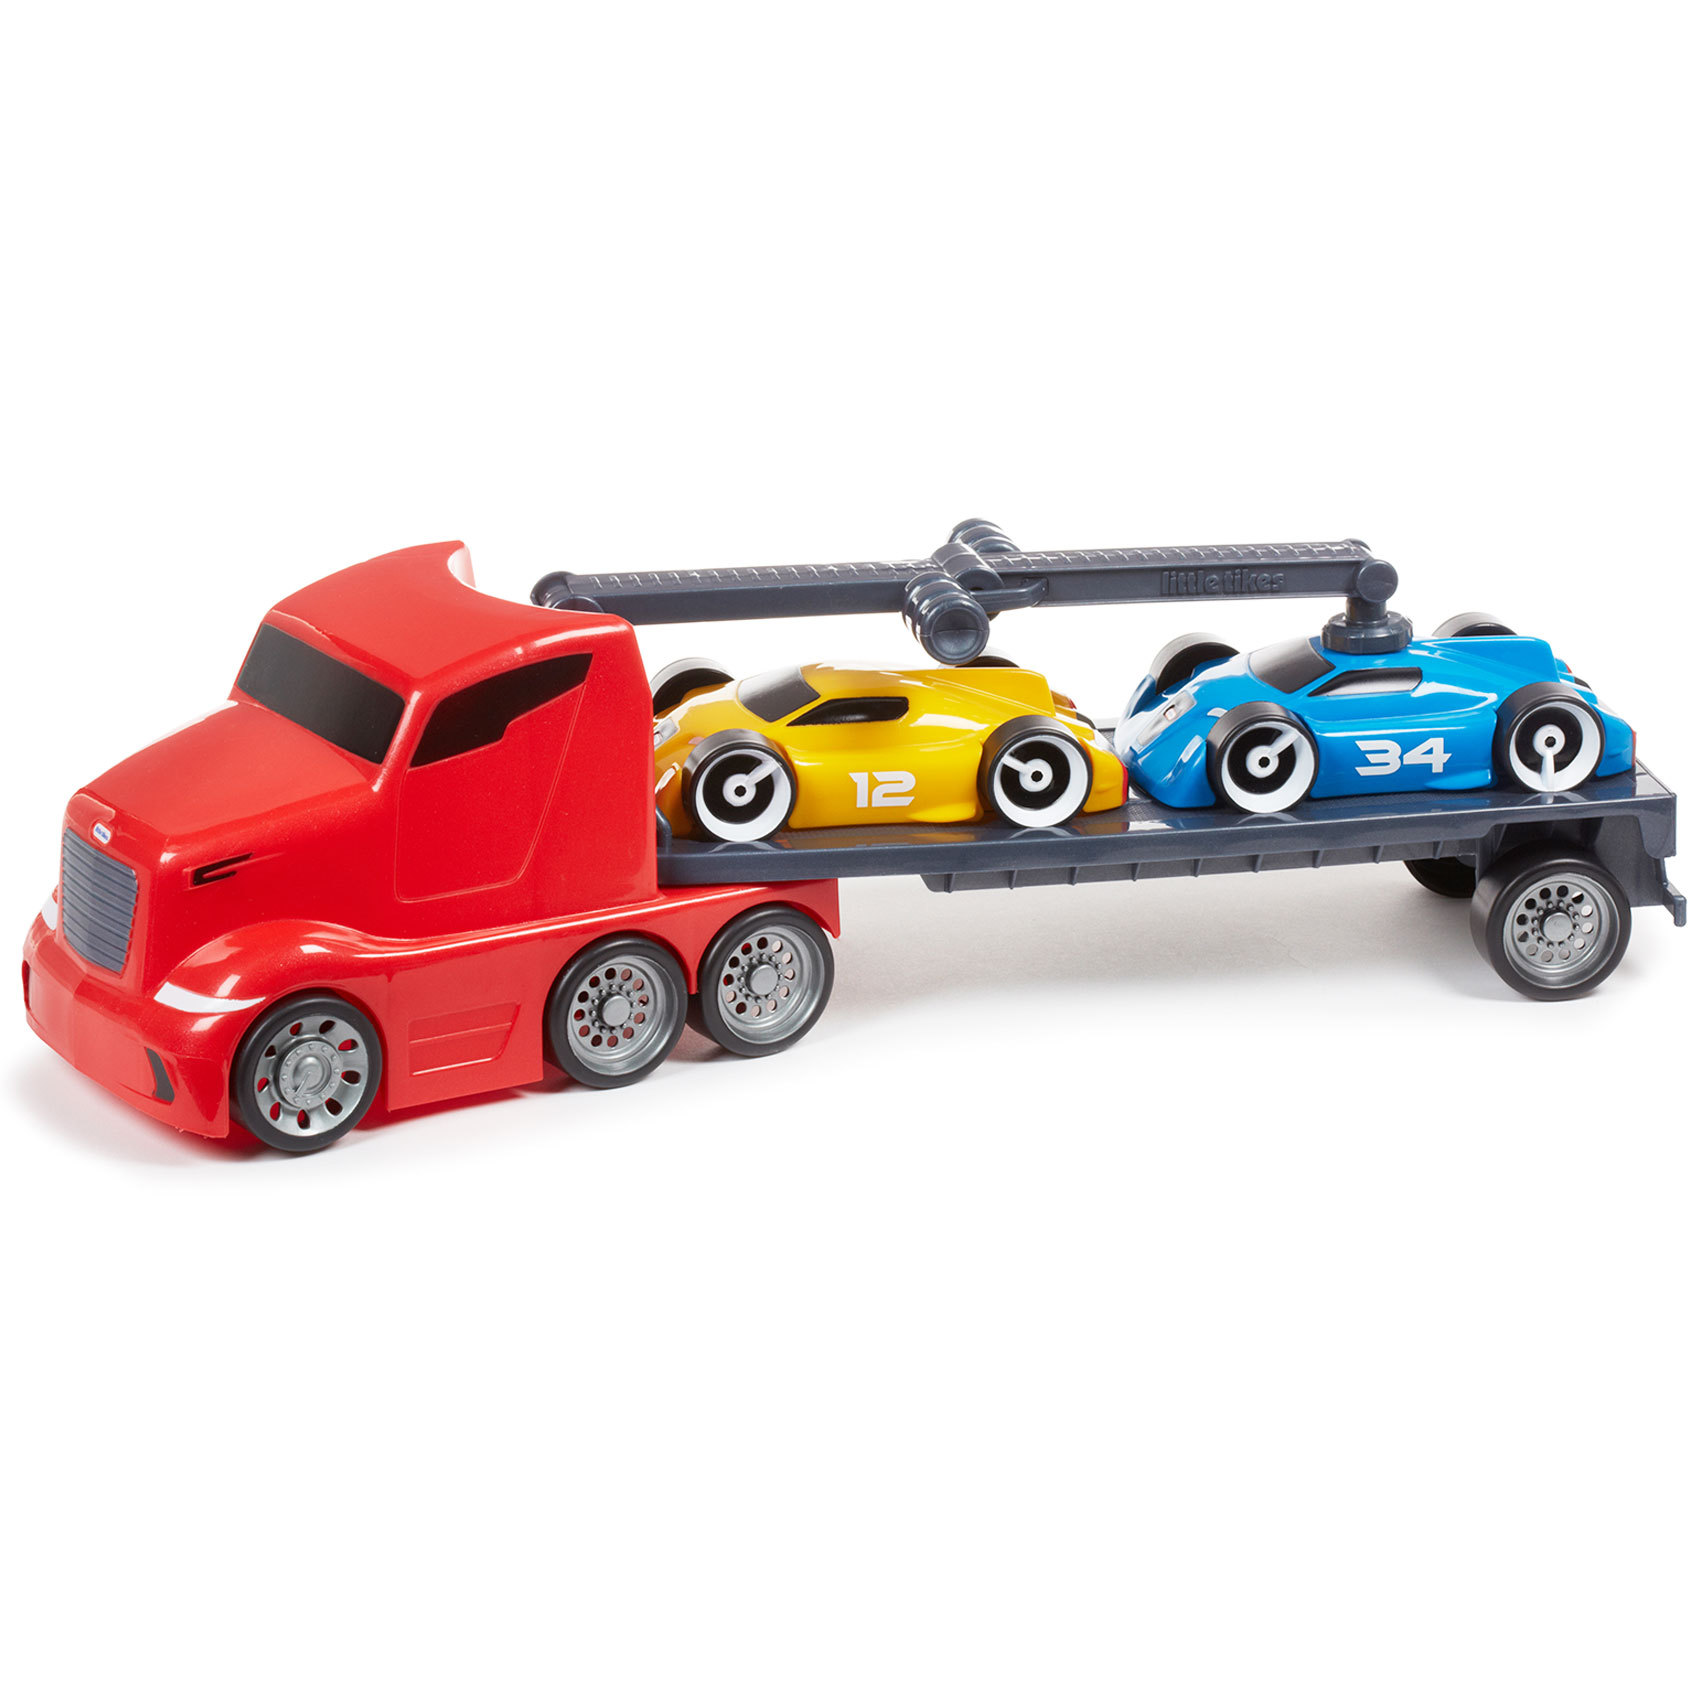 Buy Little Tikes Magnetic Car Loader Toy Online in UAE - Carrefour UAE